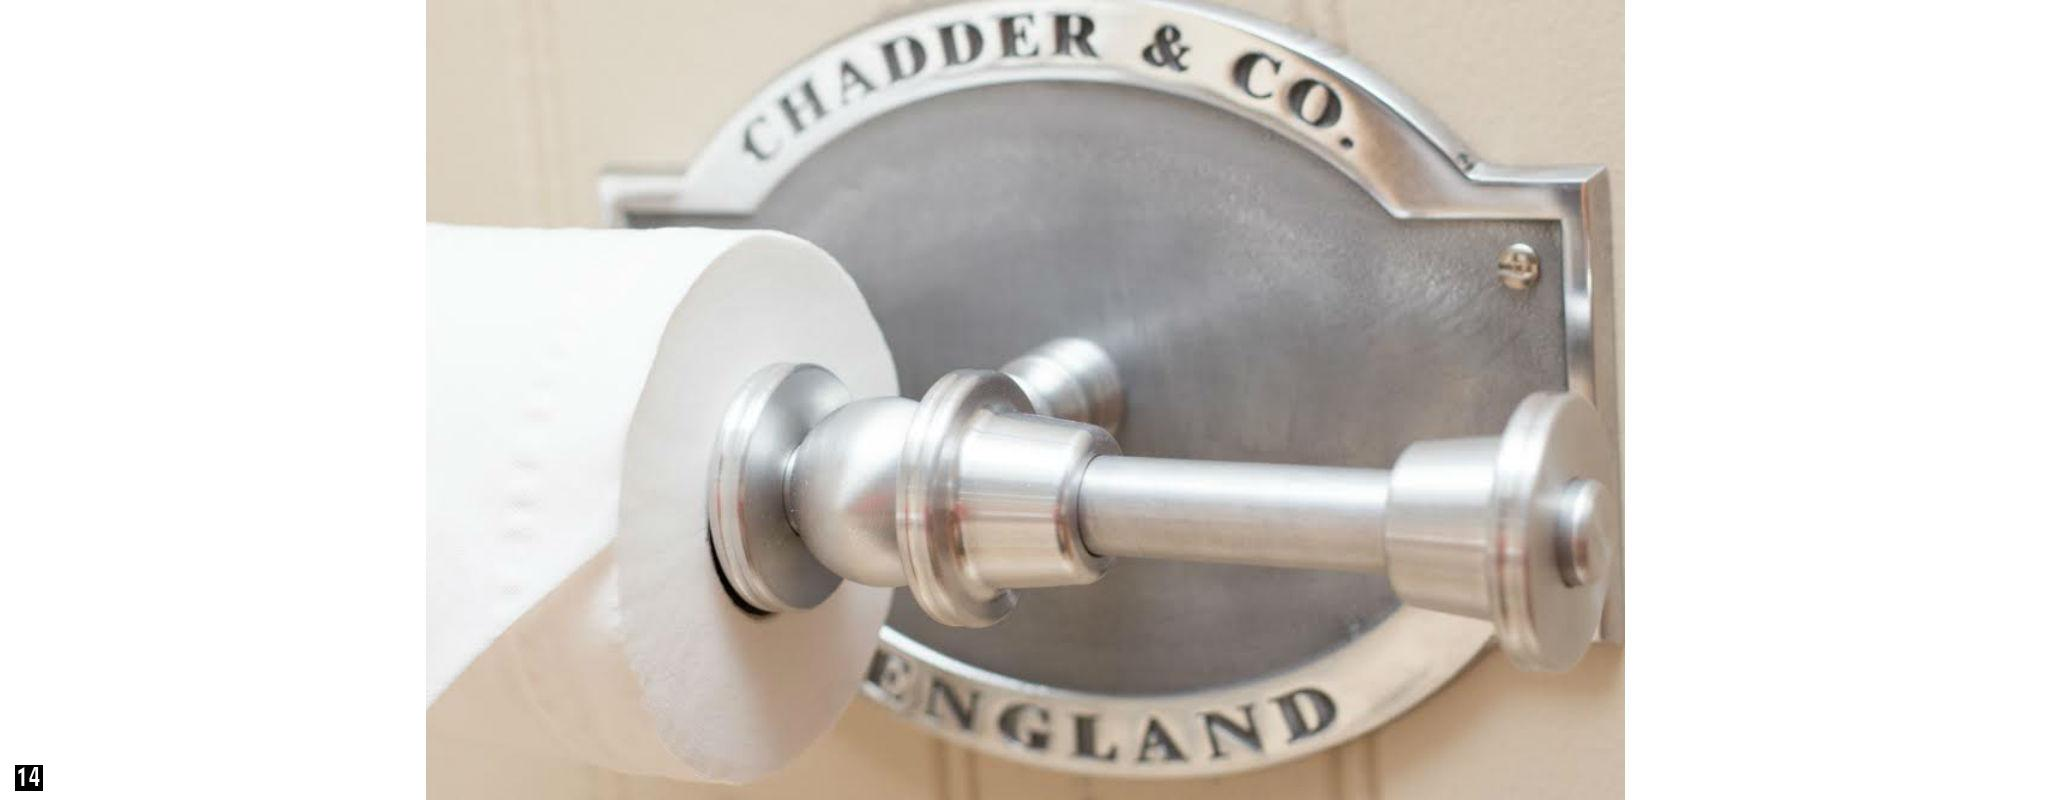 Traditional Bespoke Toilet Roll Holder, Lockable Hotel Toilet Roll Holder, Vintage Toilet Holder